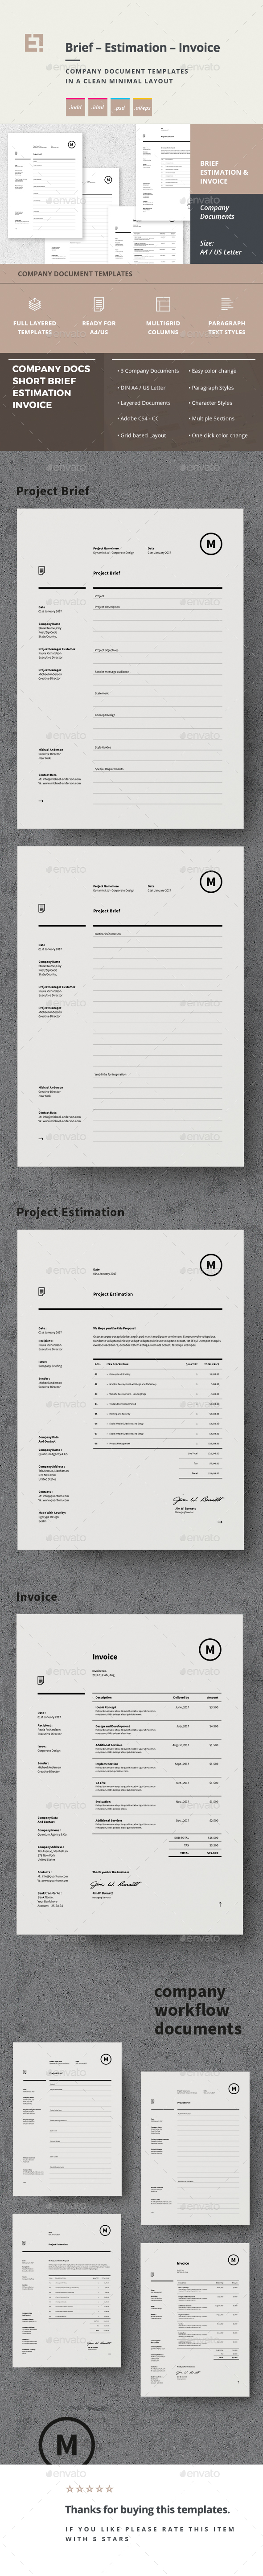 Invoice Estimation Brief - Proposals & Invoices Stationery